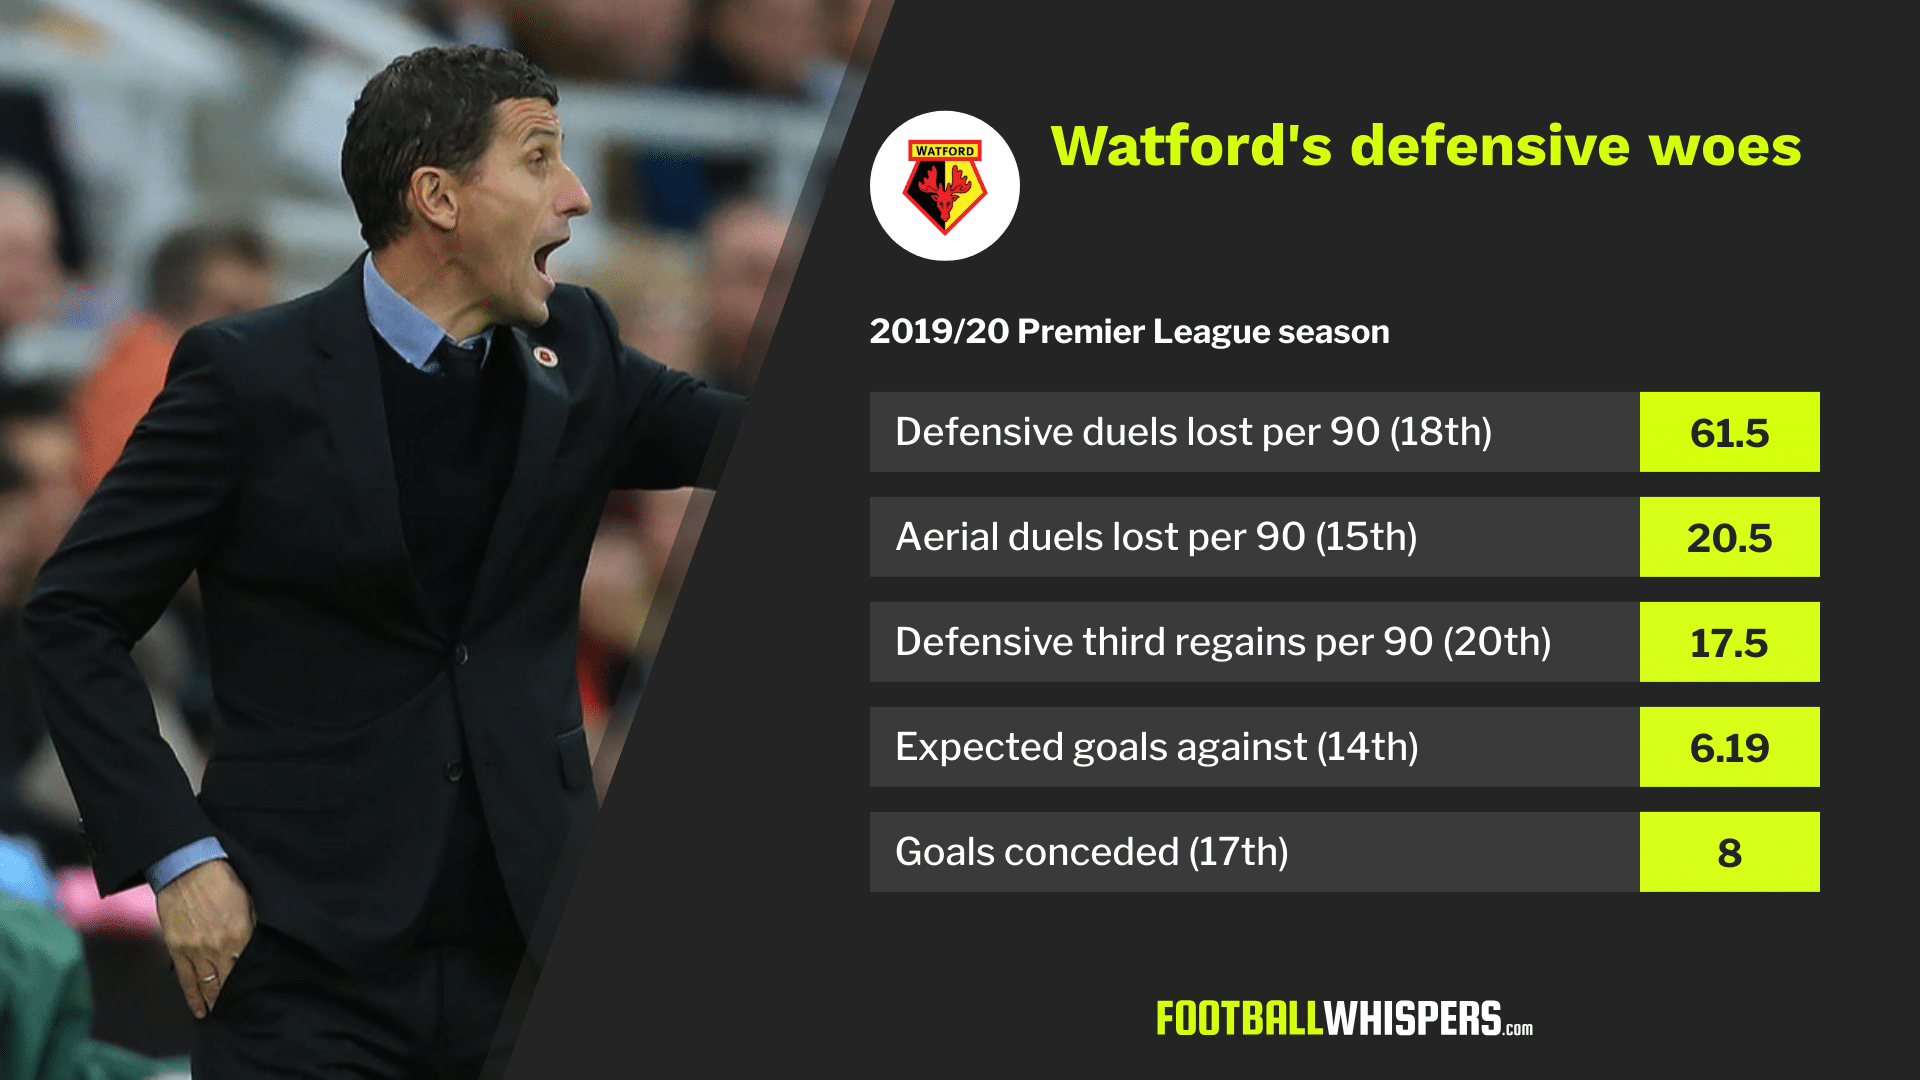 Watford must find a way to tighten up defensively under Quique Sánchez Flores